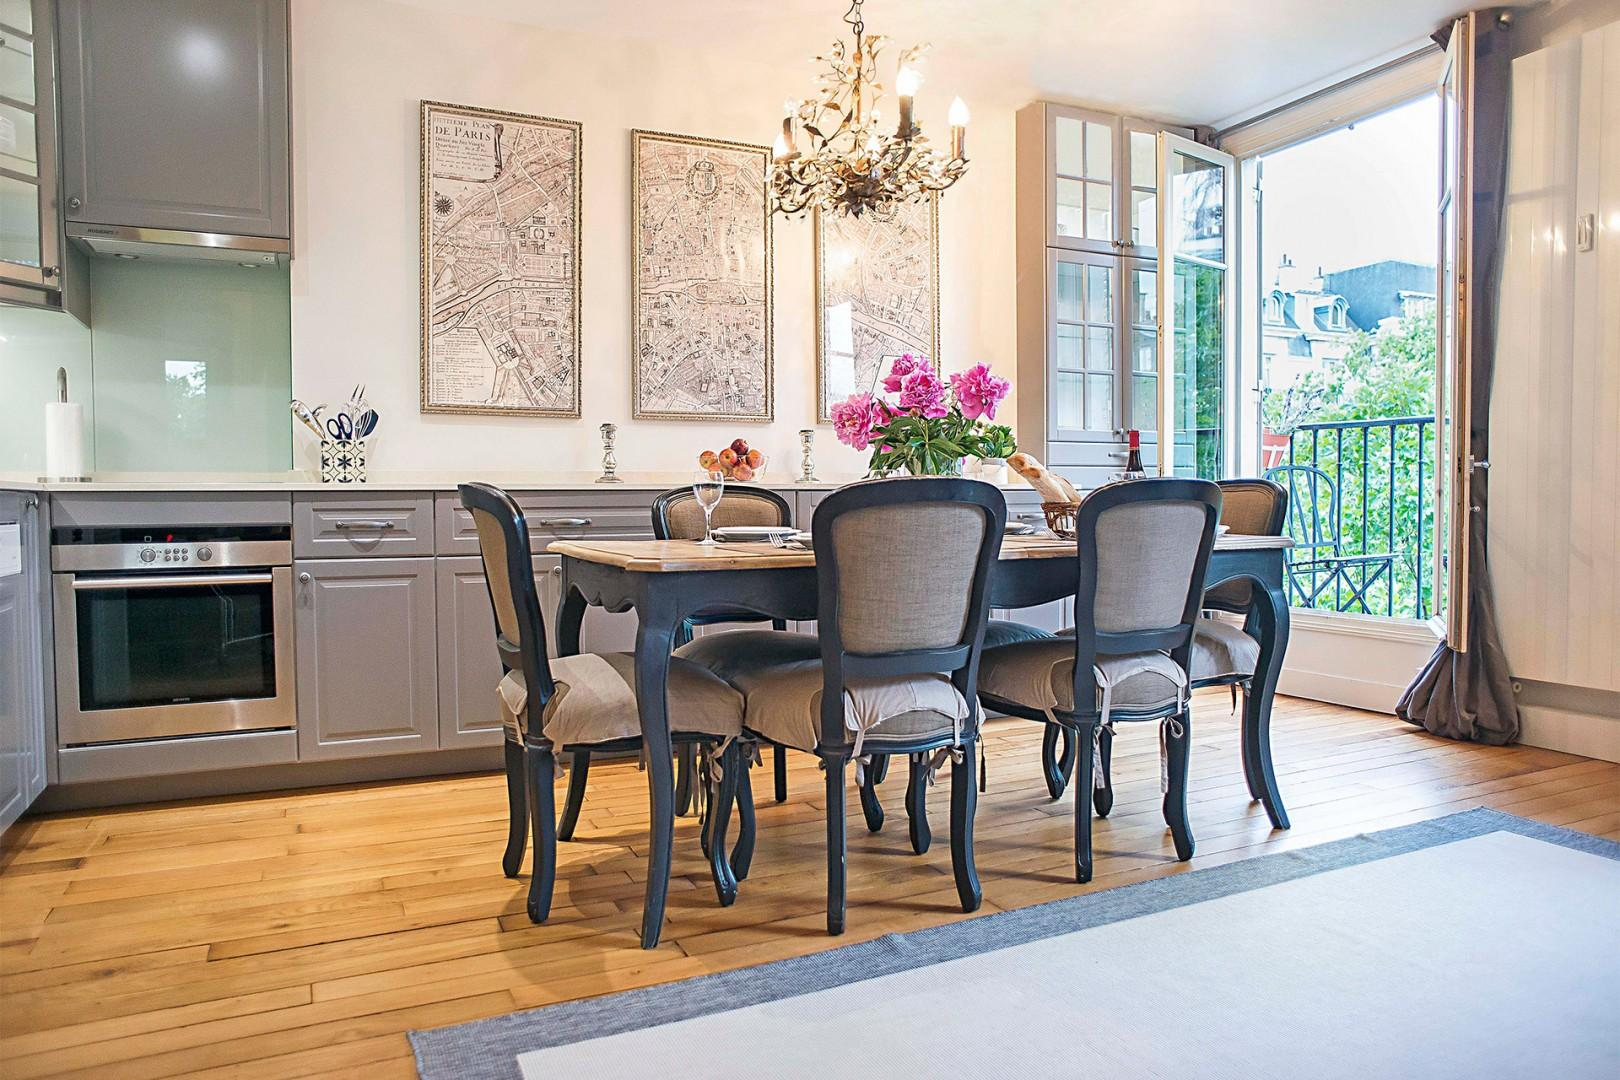 The dining table comfortably seats six people - perfect for dinner parties!